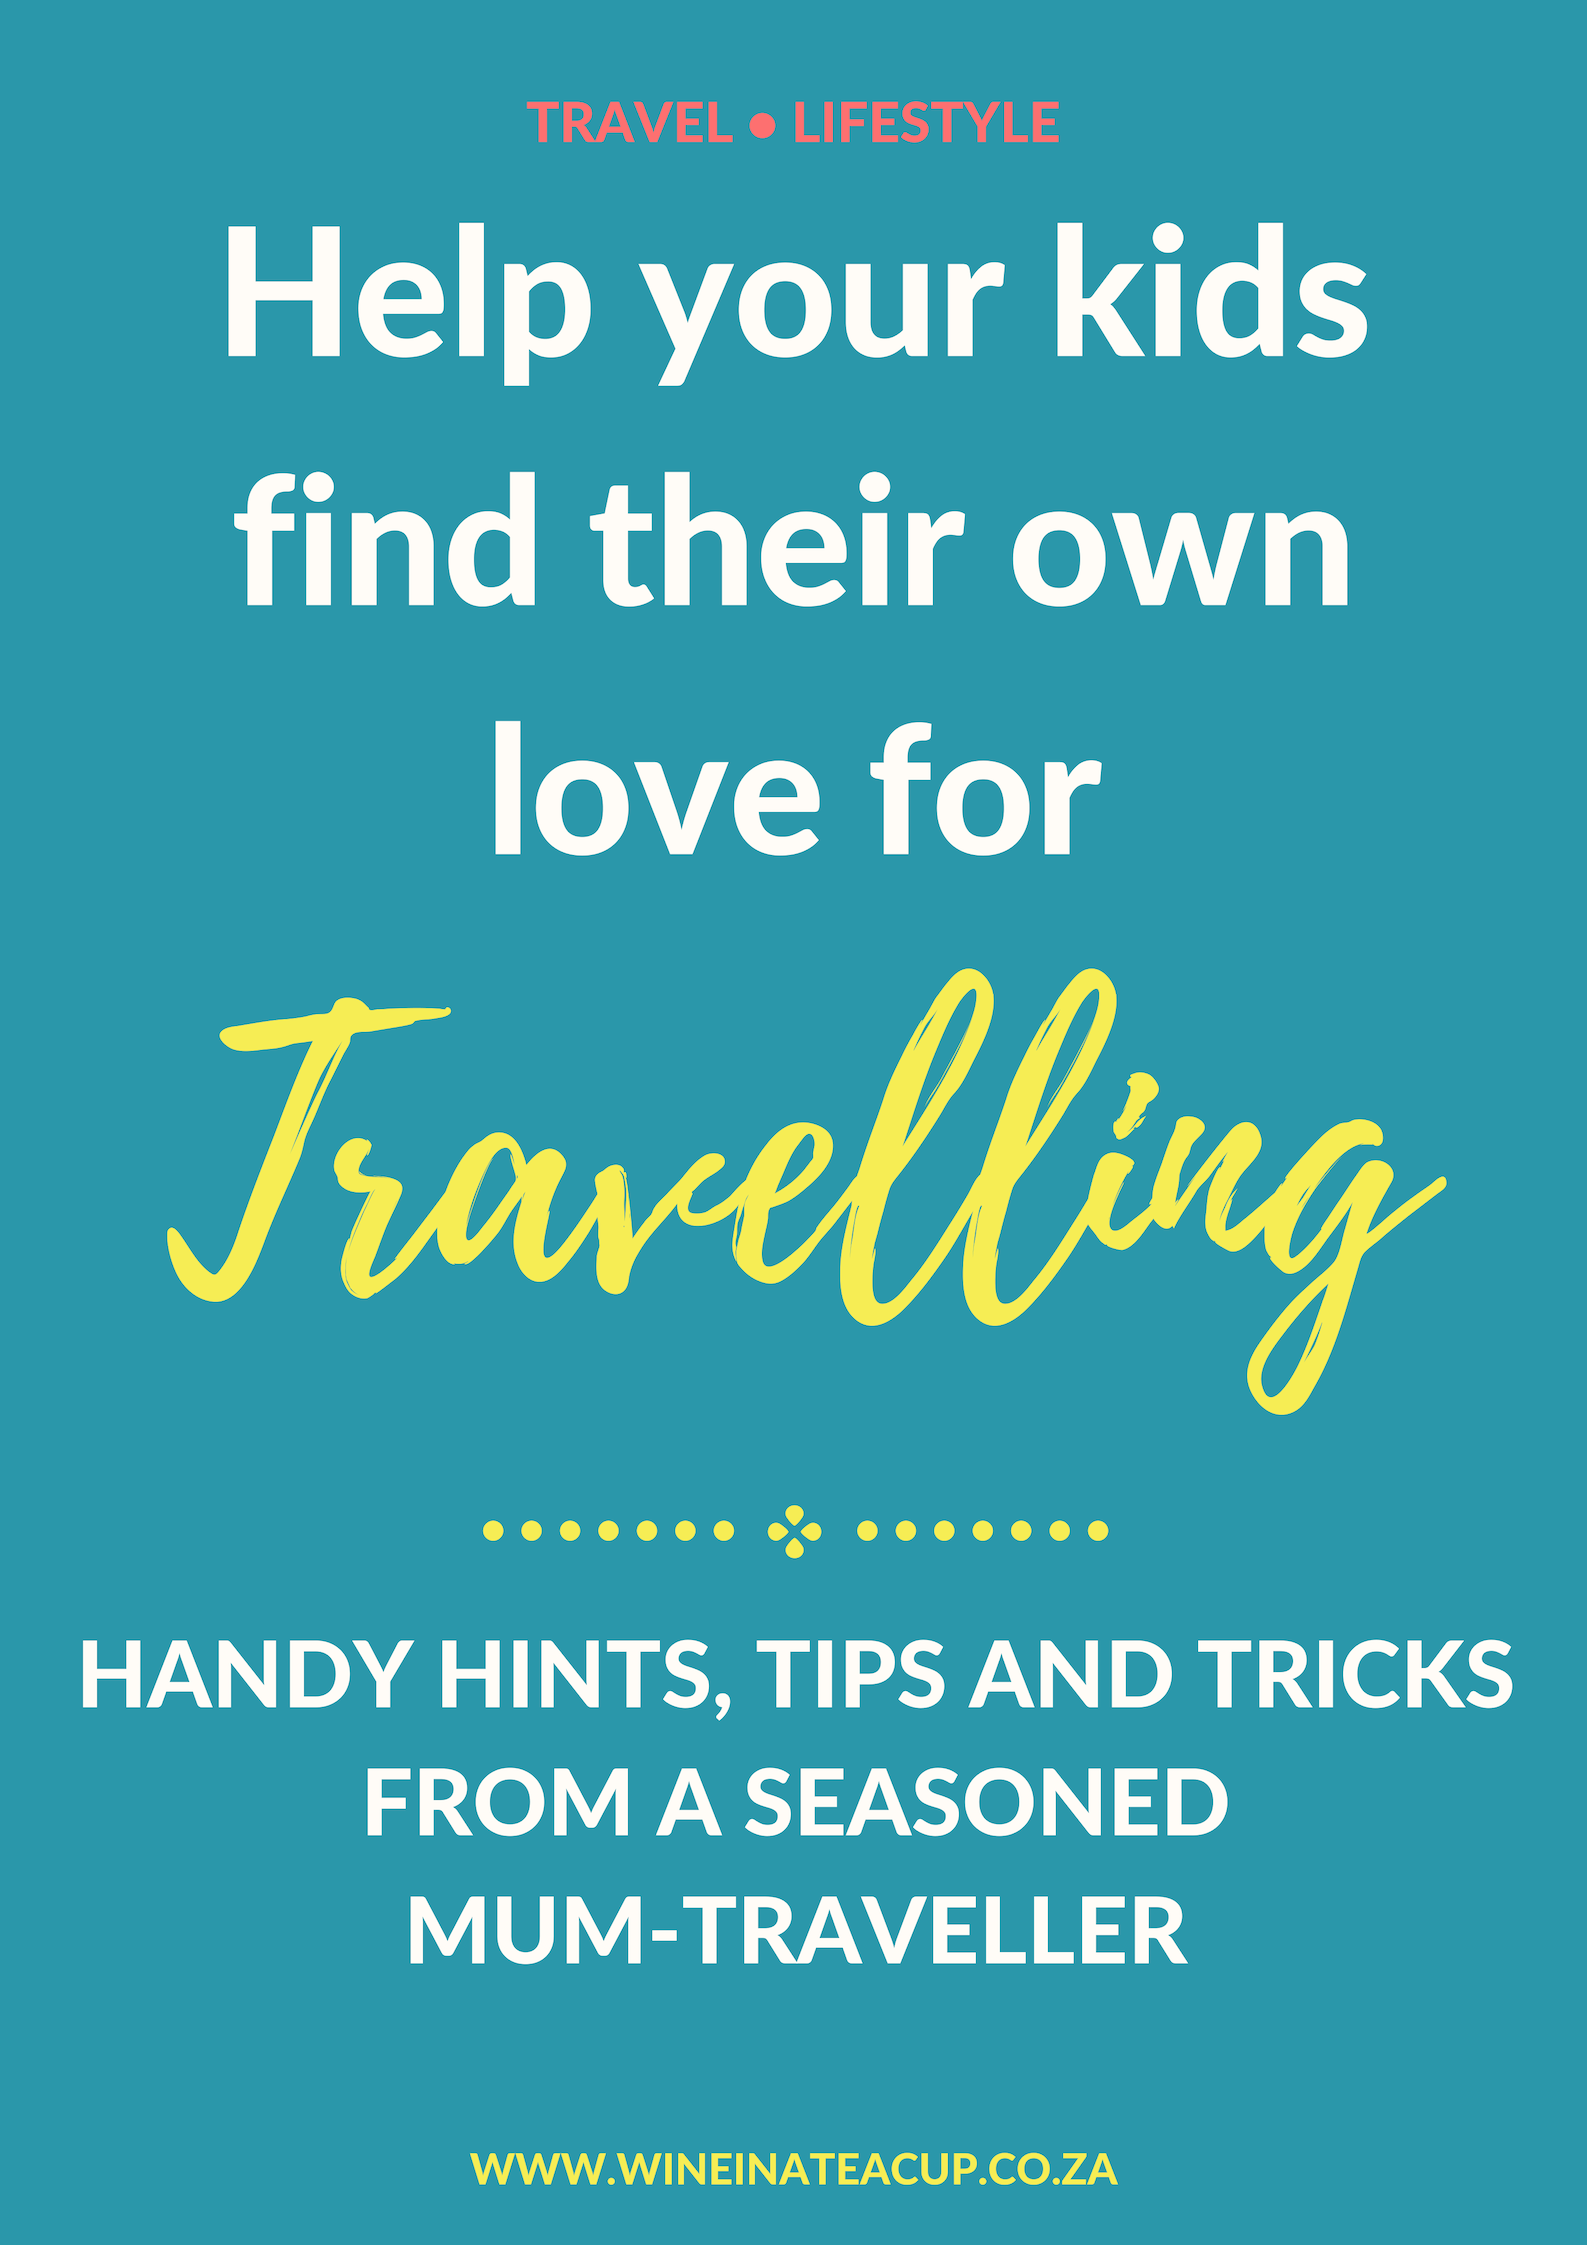 Travelling with kids. How to stay sane and inspire a love of travelling in your little ones #travelwithkids #familytravel #flyingwithkids #flyingwithchildren #travellingwithkids